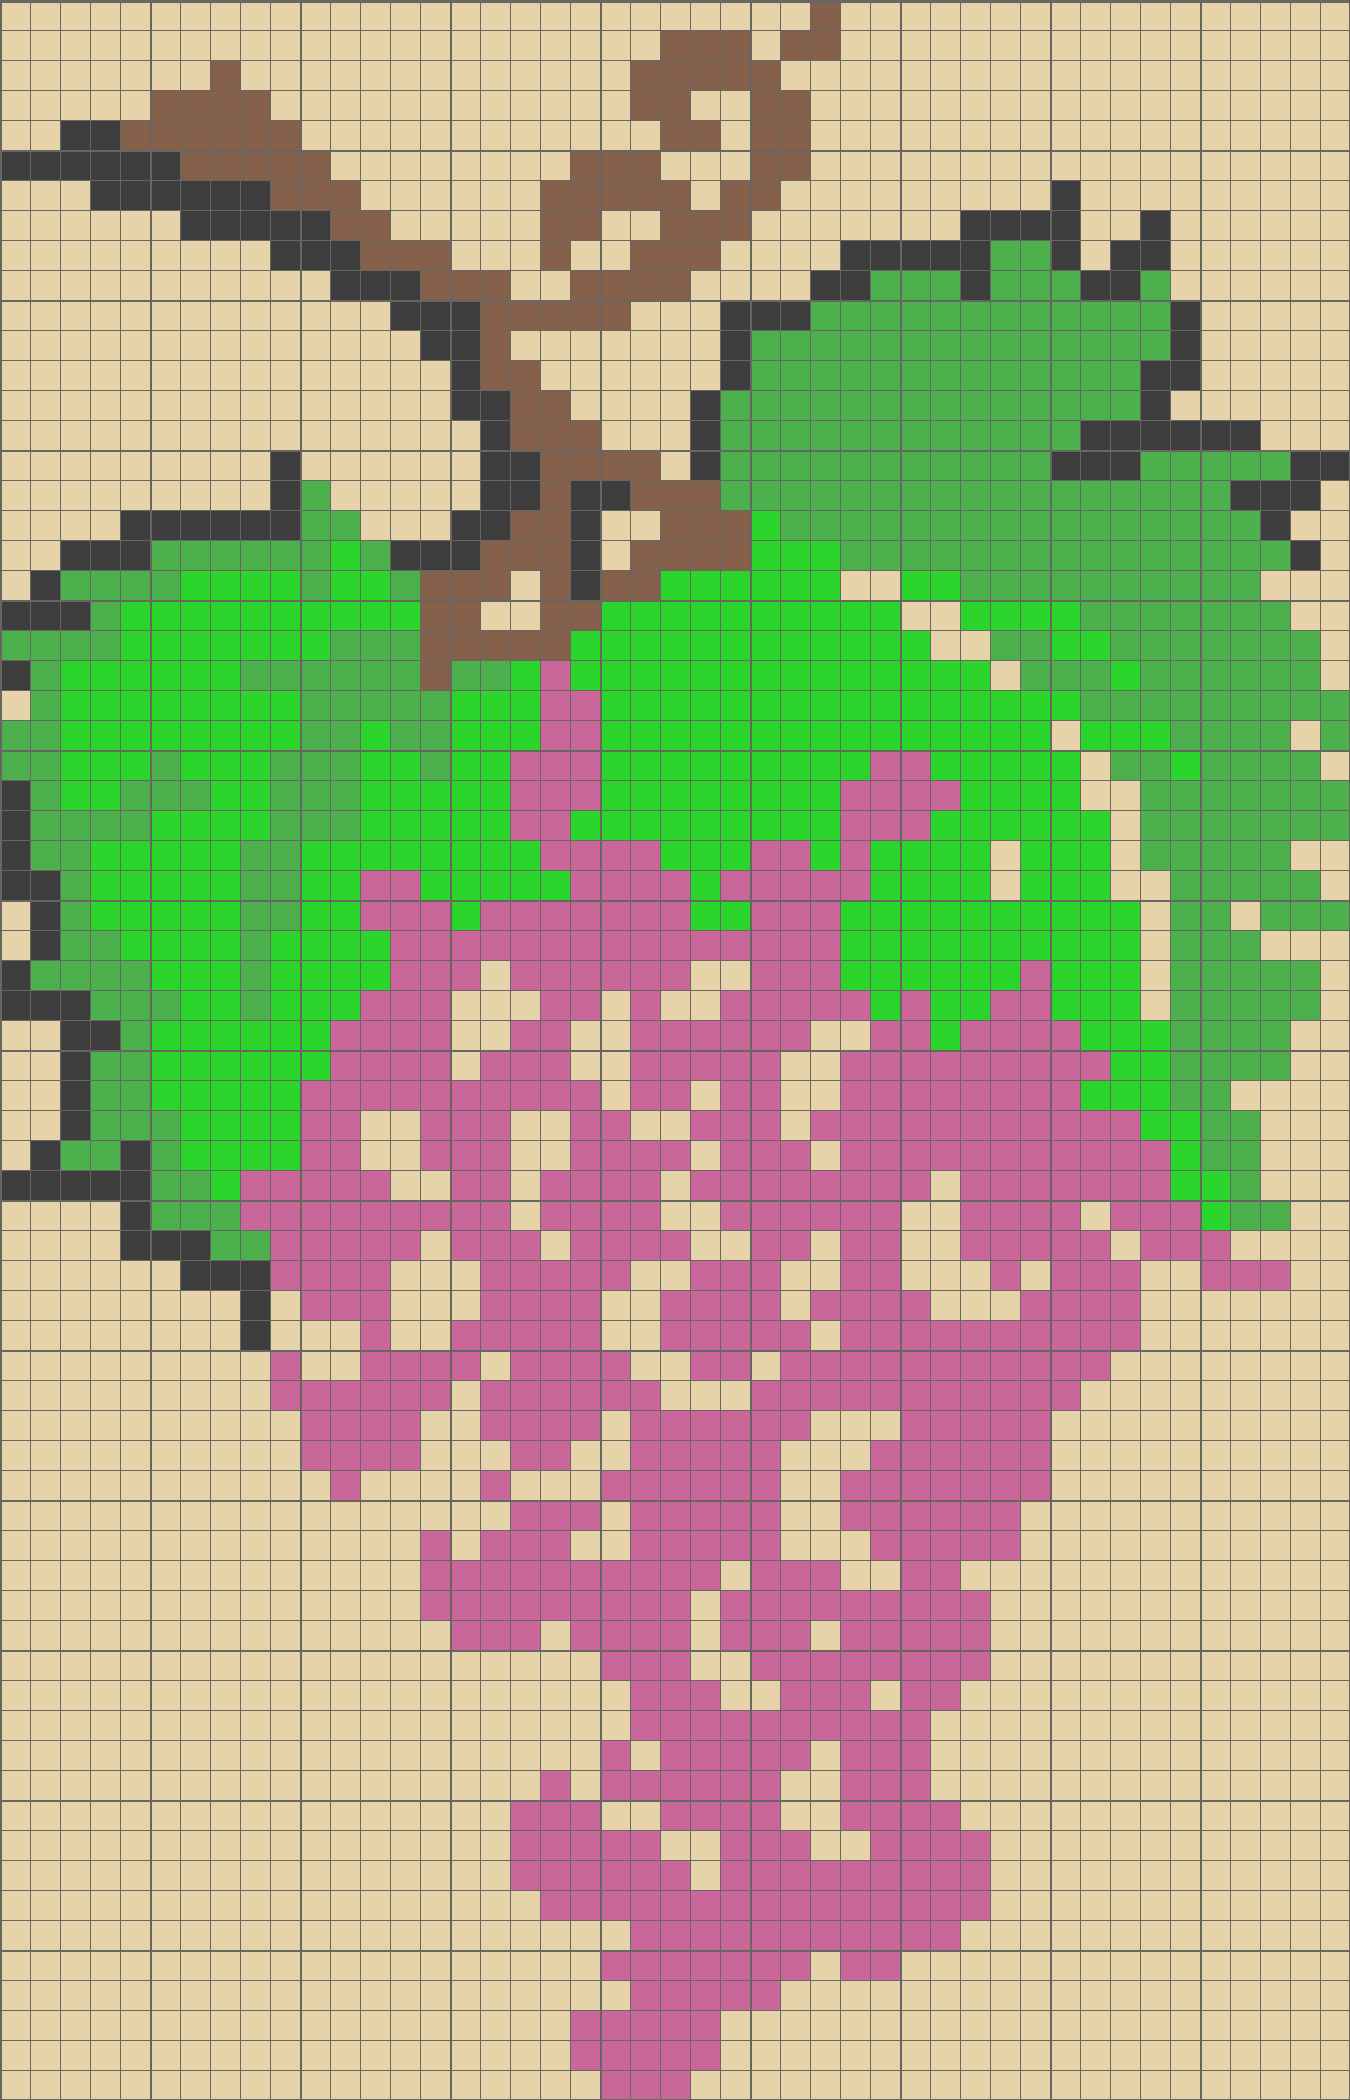 Solution for color CrossMe Level 8.44 - Grapes